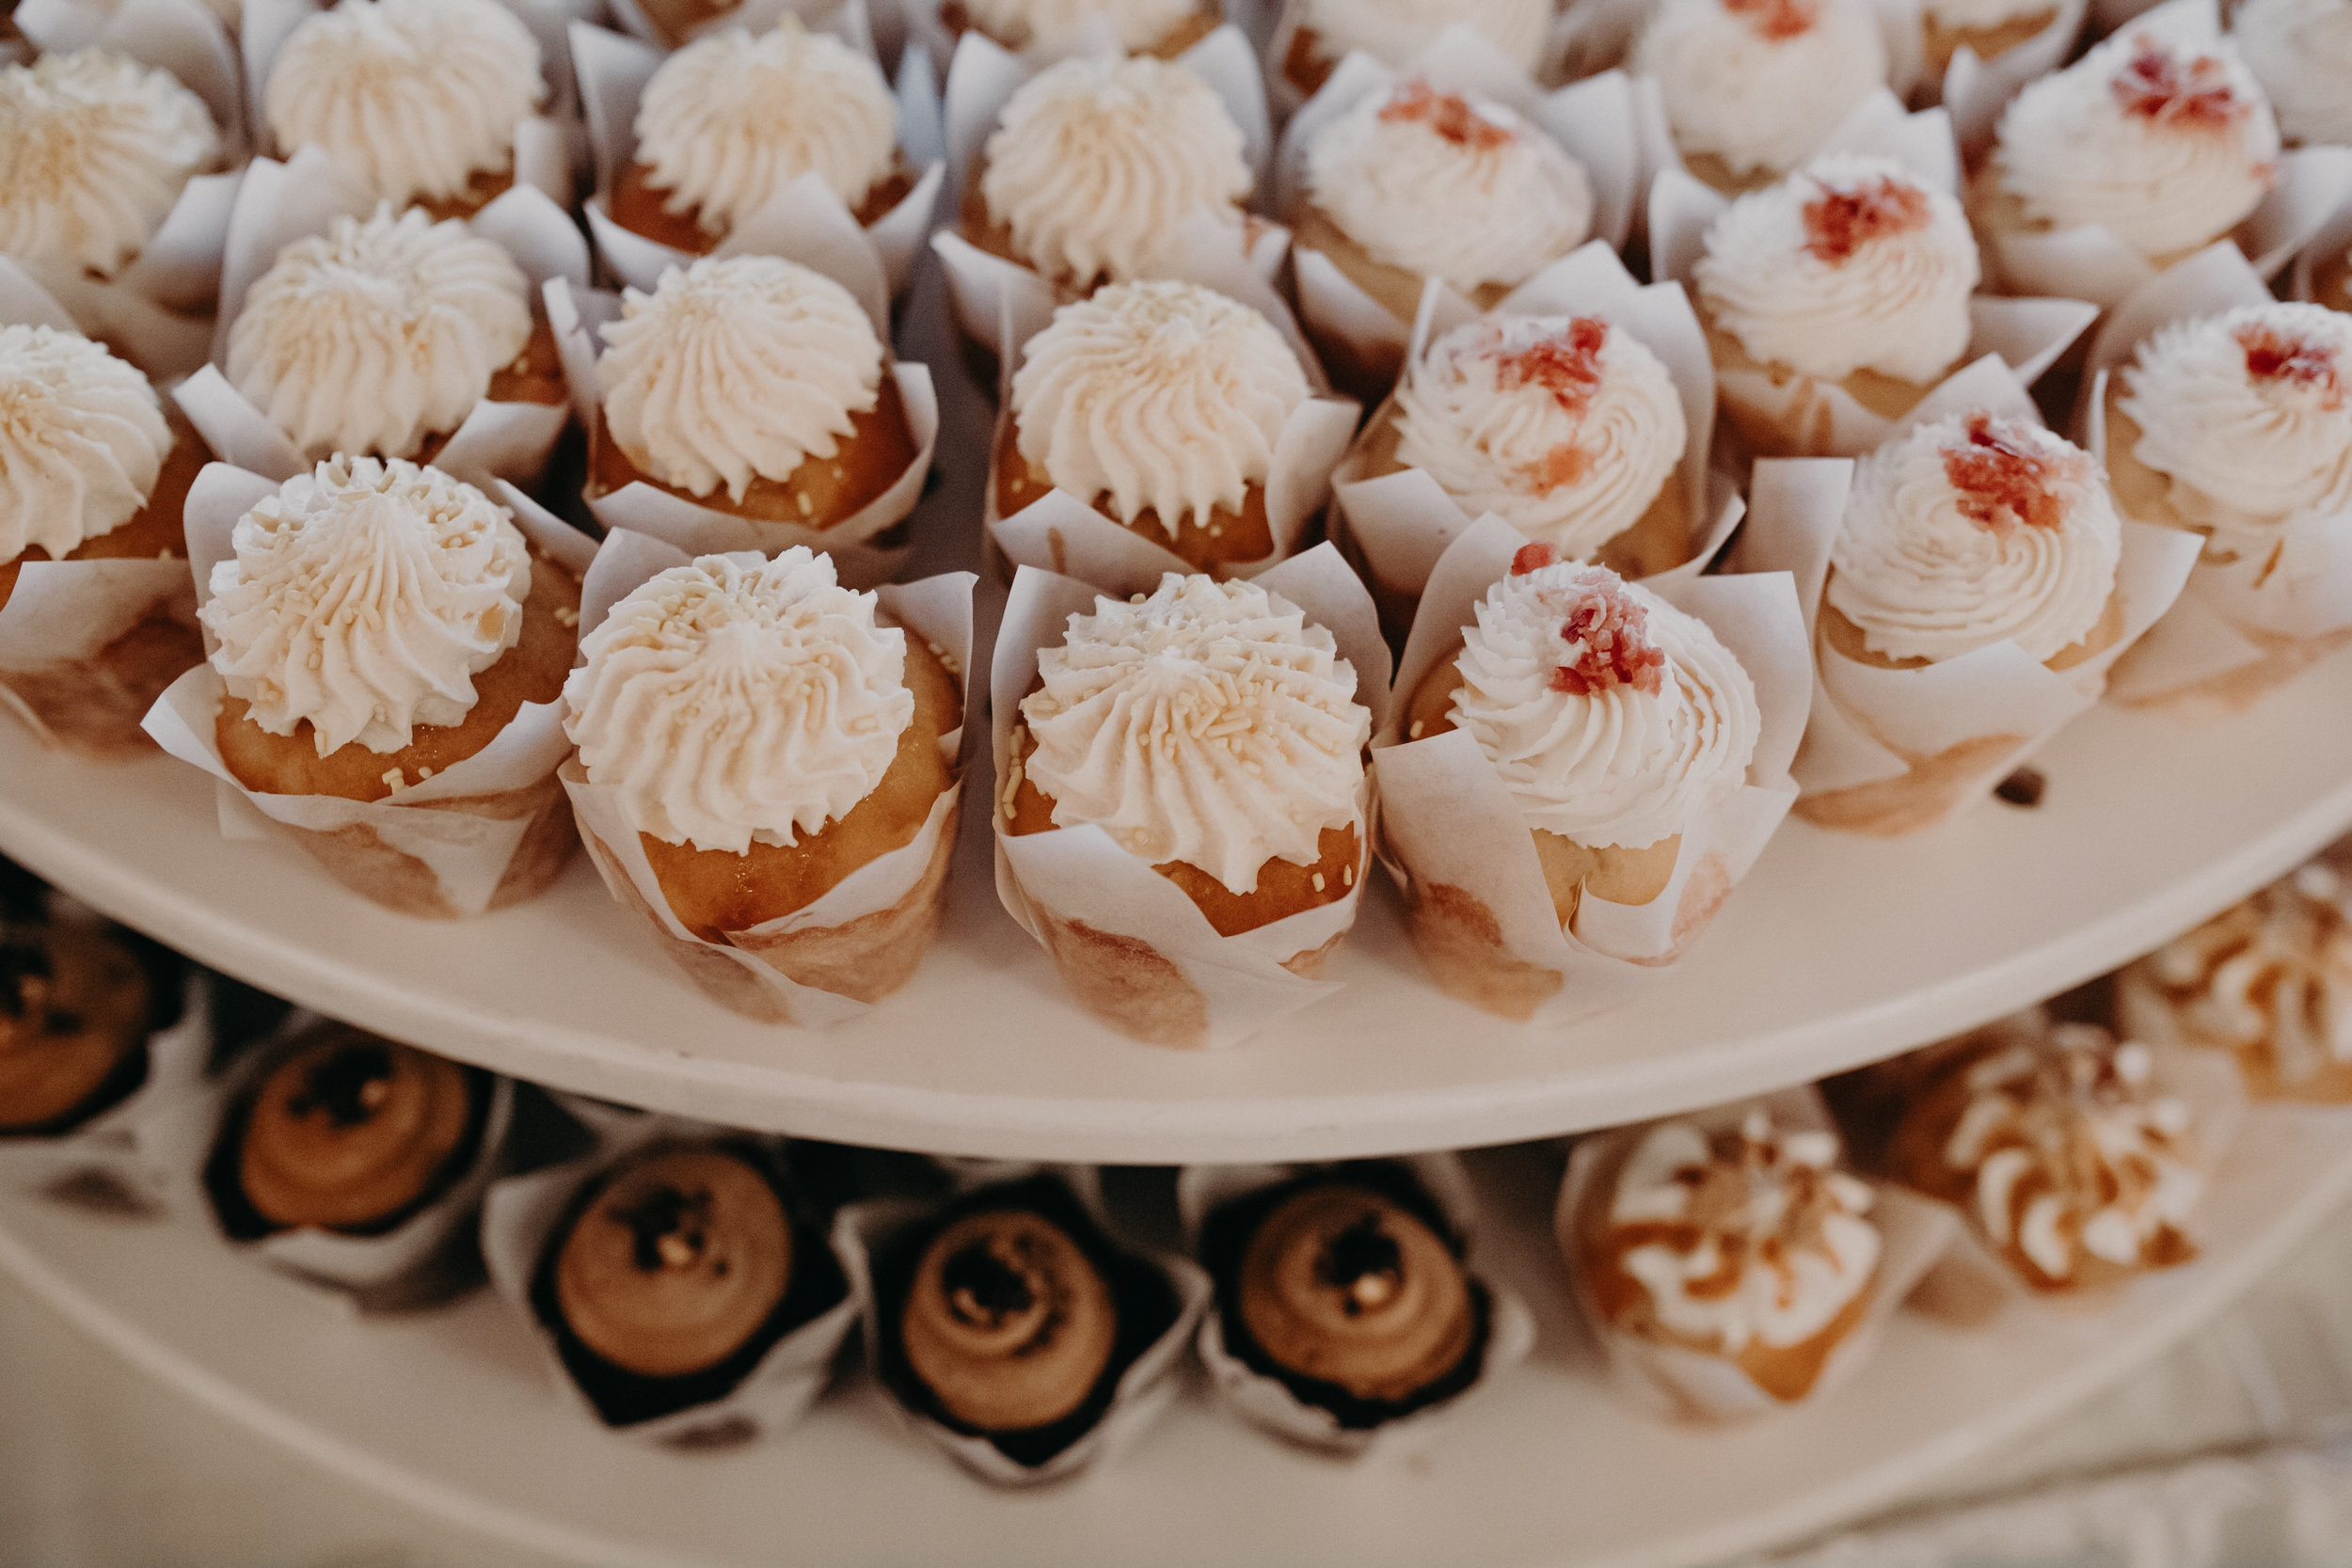 wedding cupcakes baked by 2 1/2 Cups in Marshfield WI